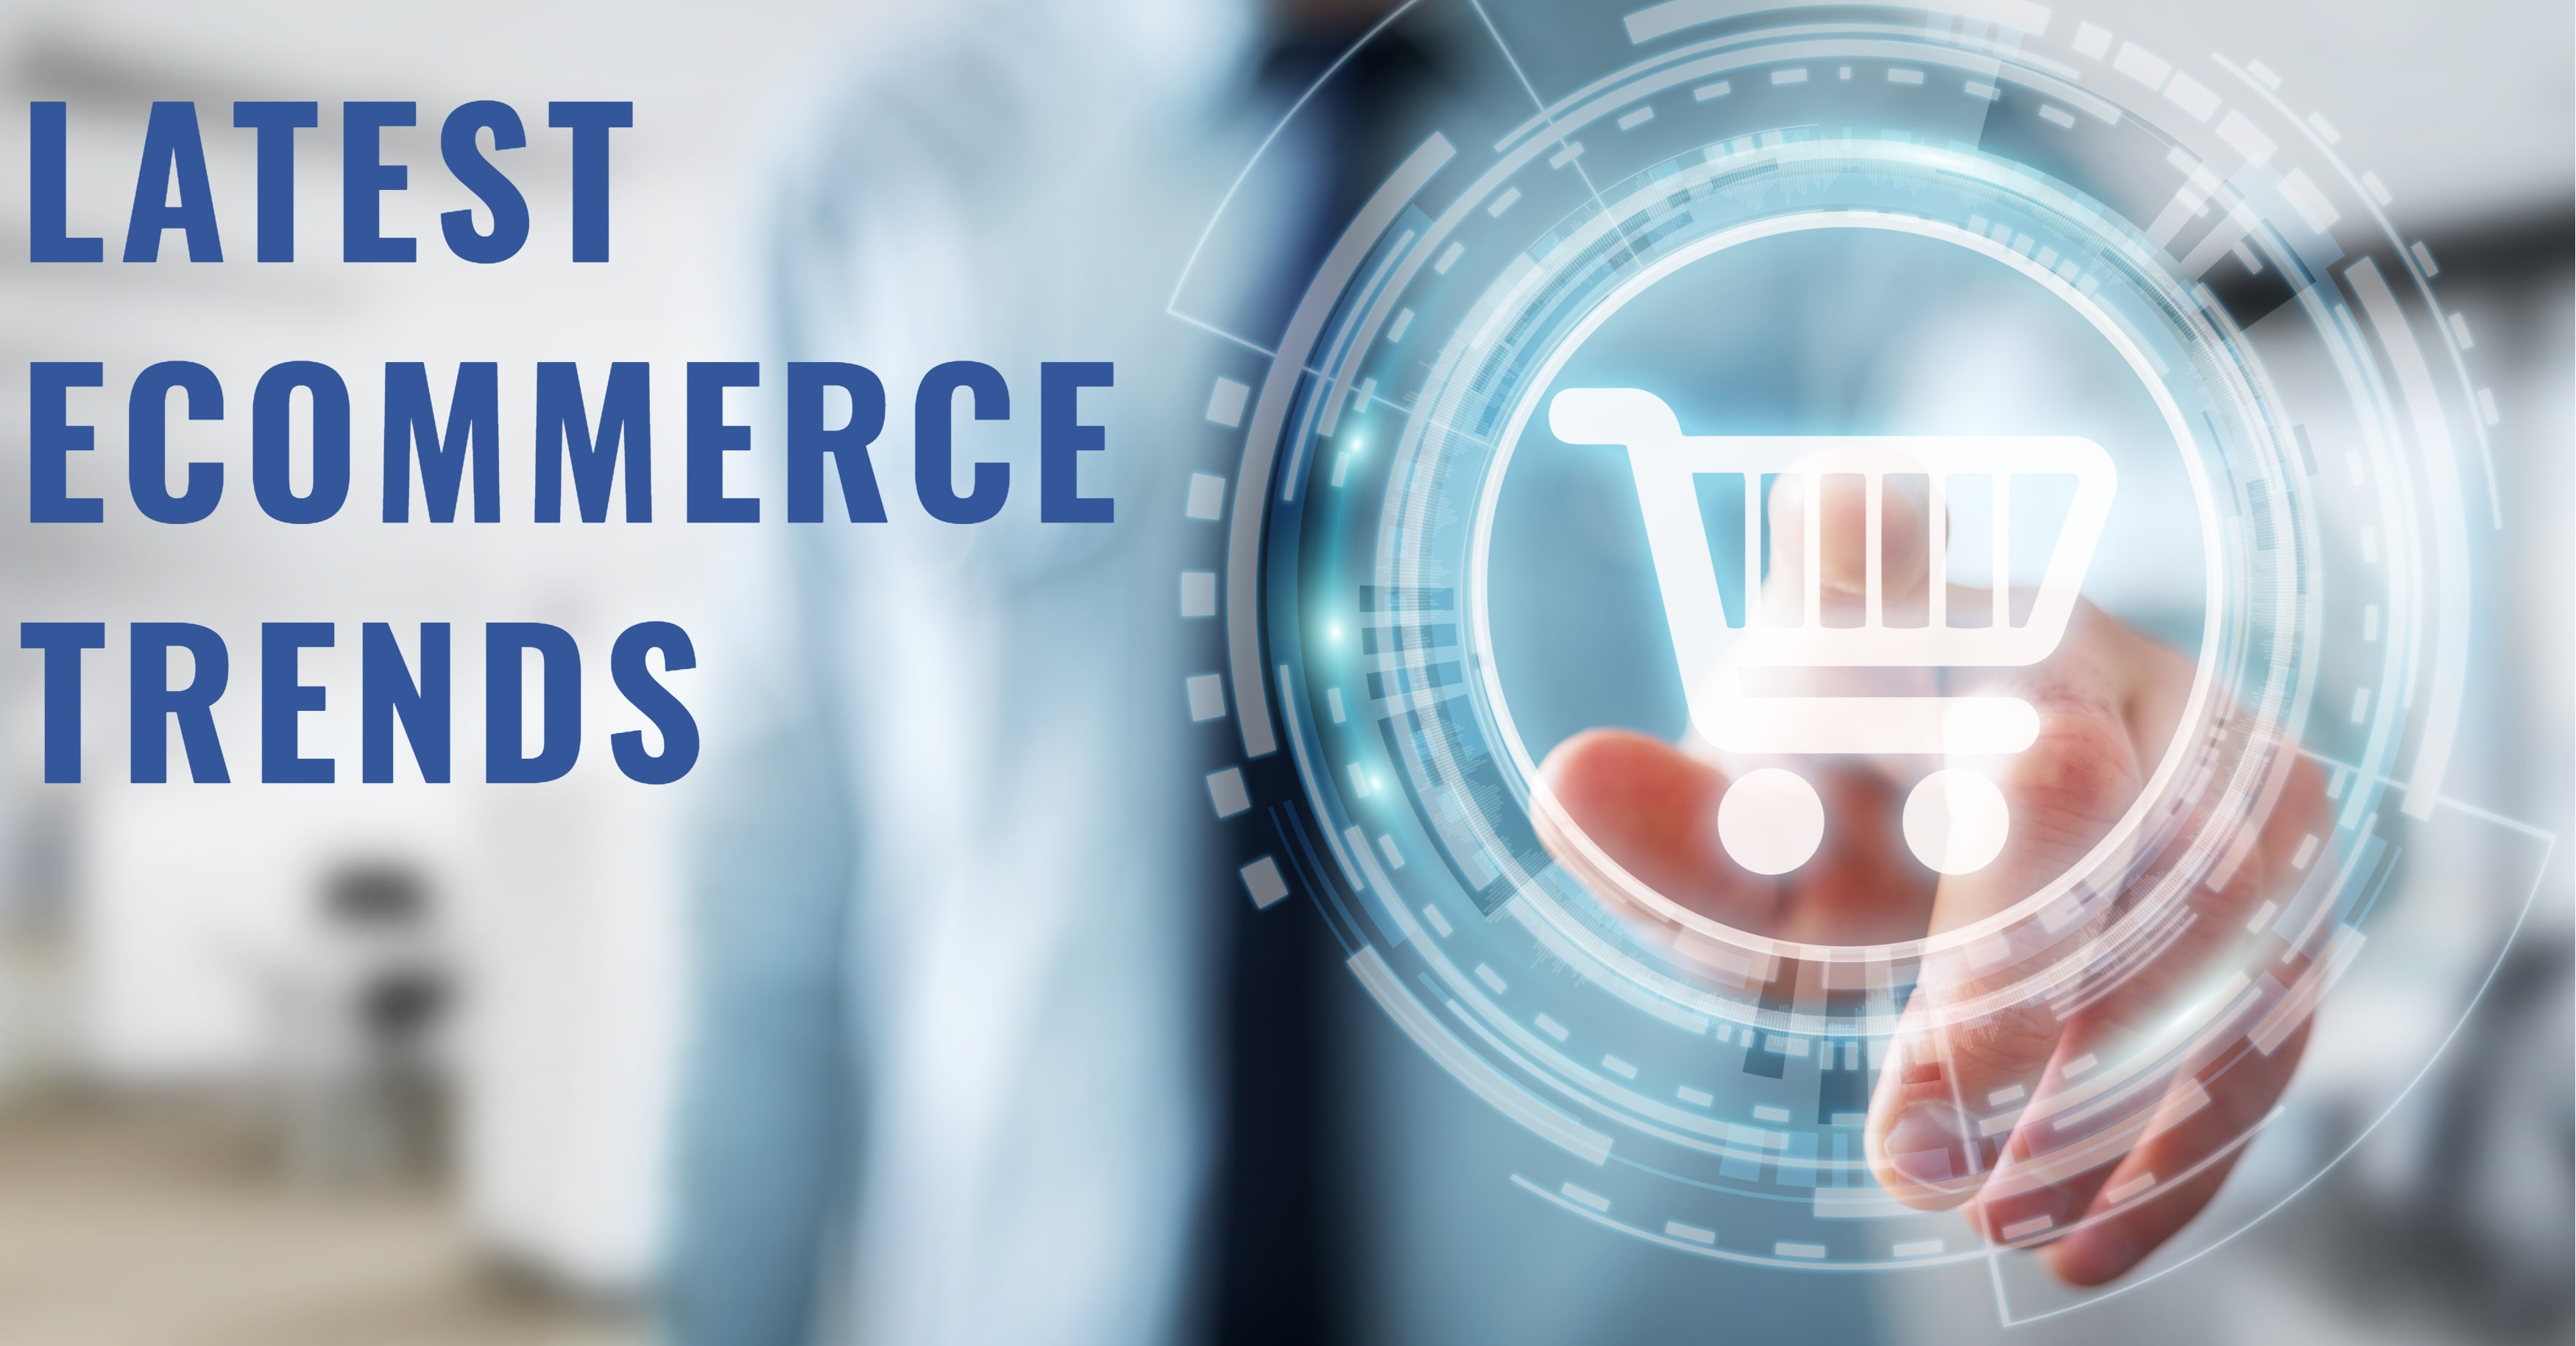 Latest eCommerce Trends You Need to Know